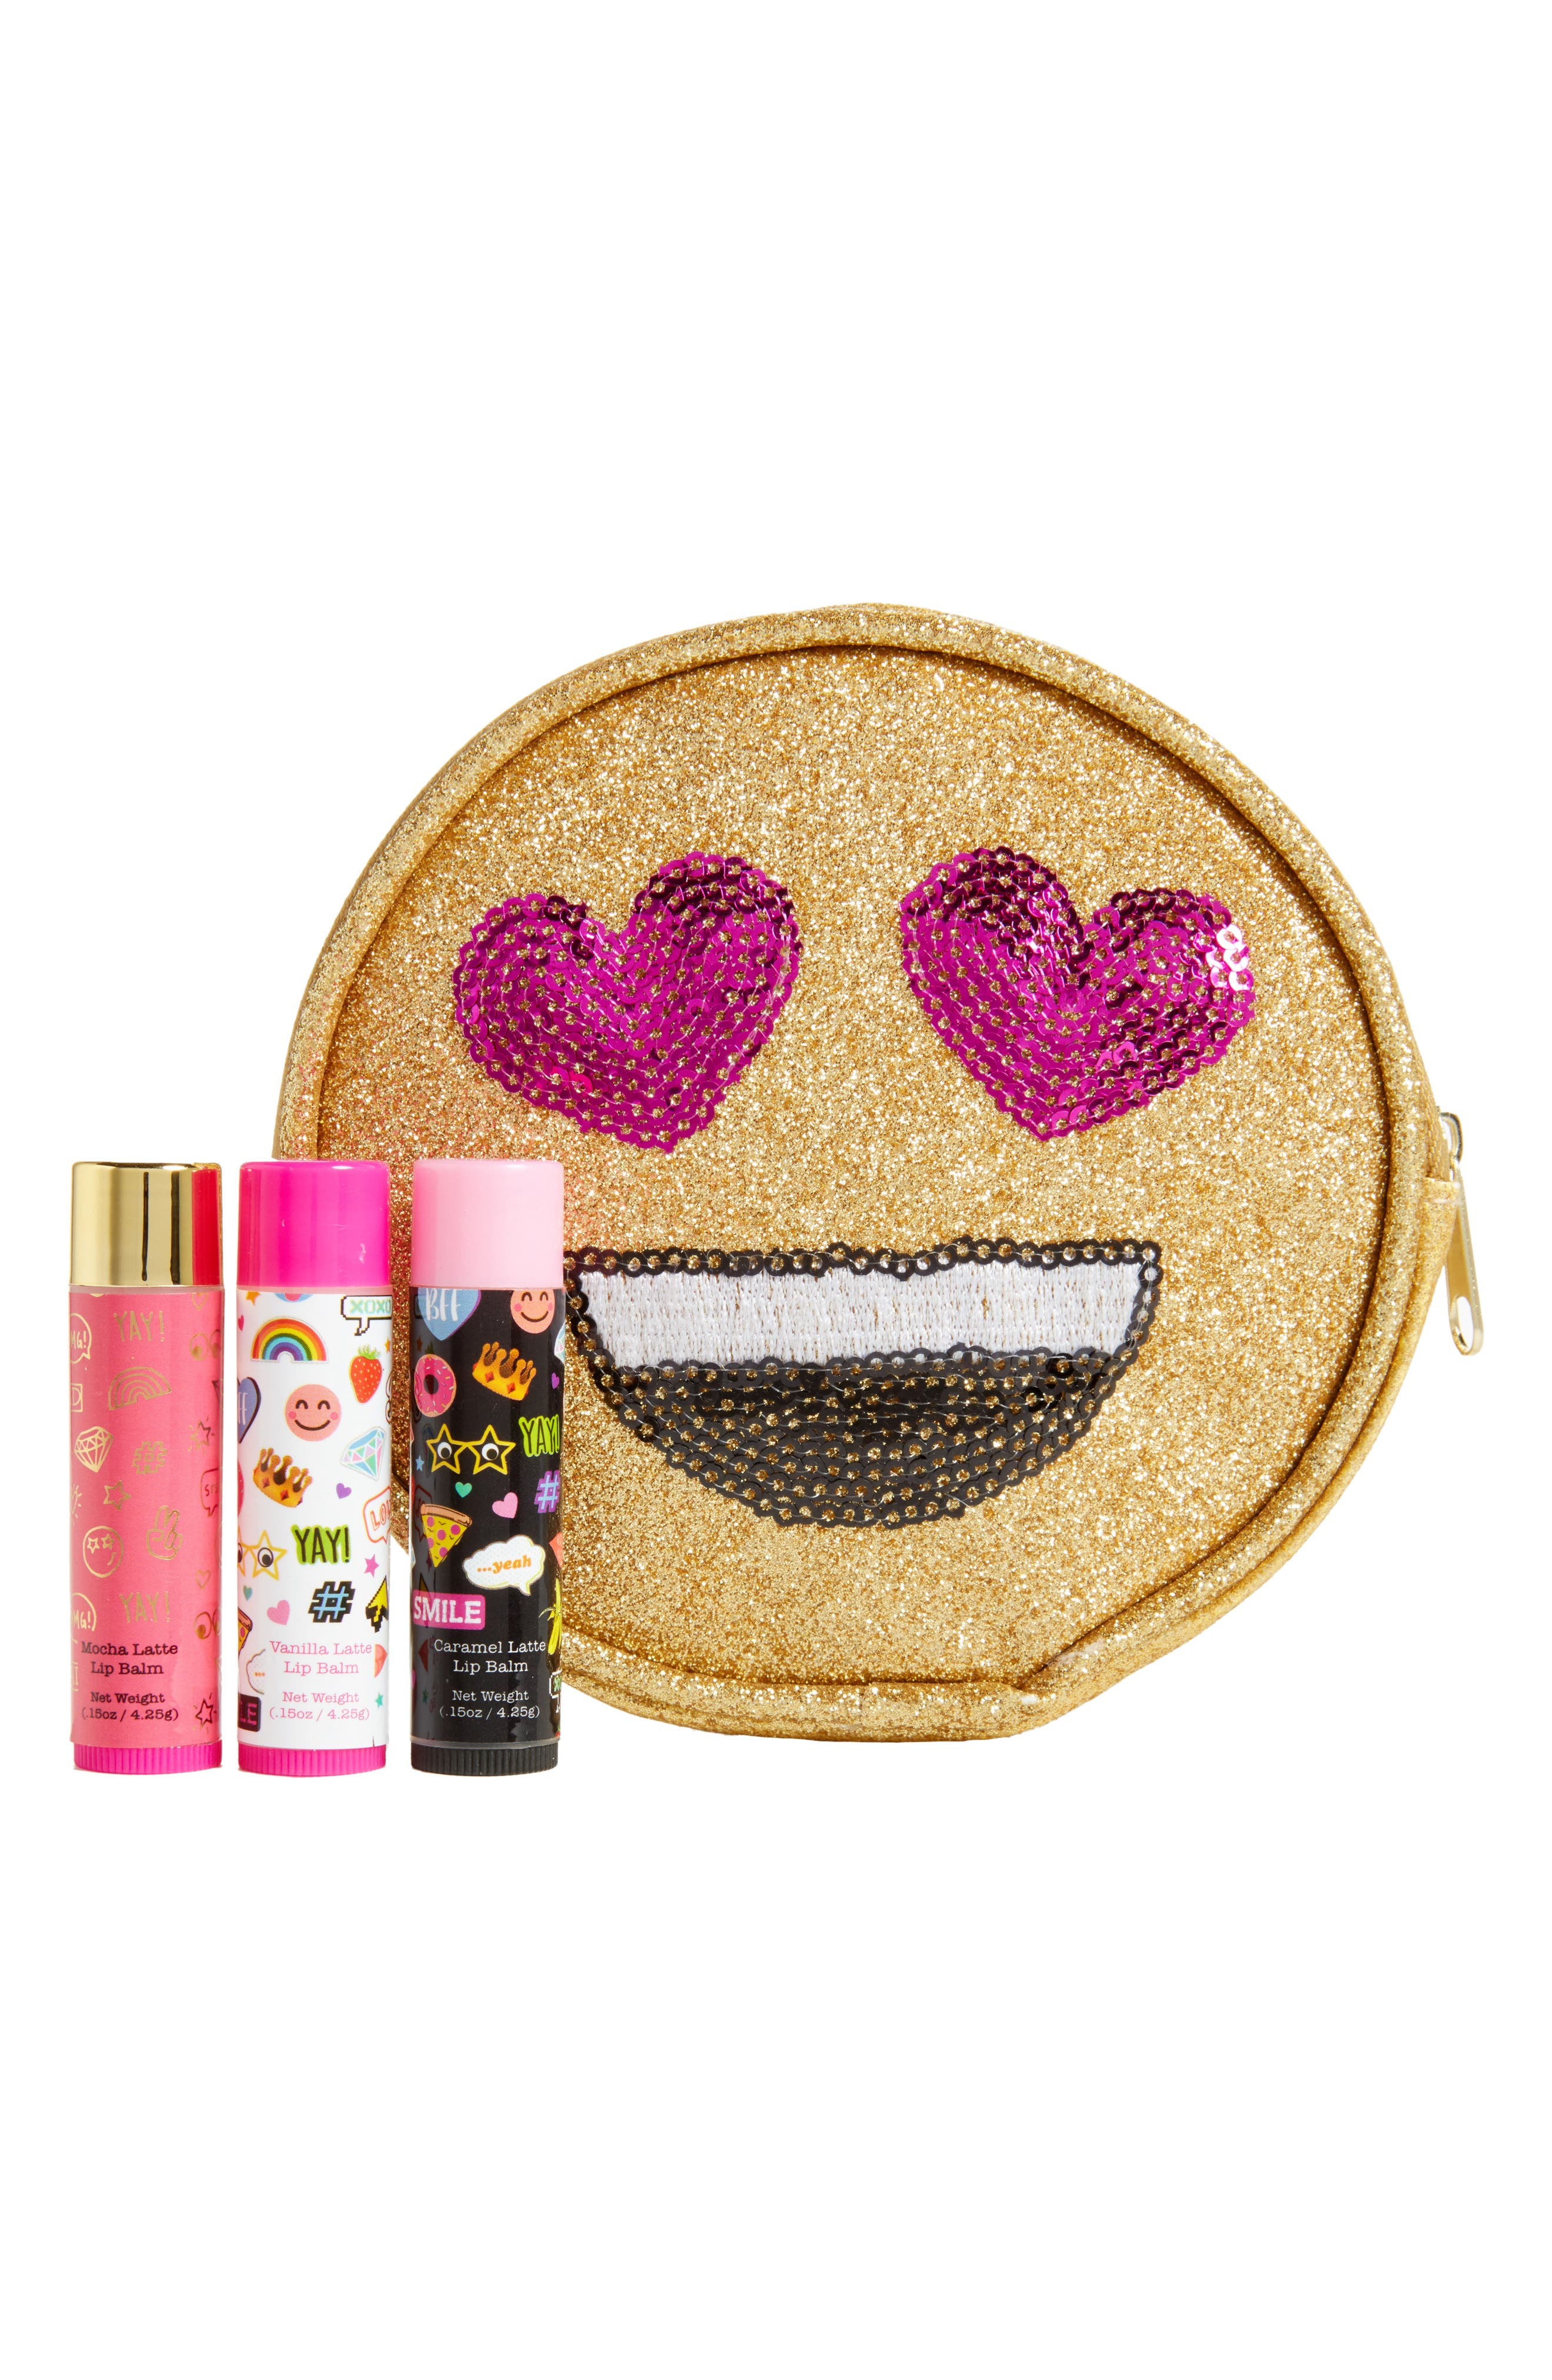 Capelli of New York 4-Piece Emoji Lip Balm & Pouch Set,                             Main thumbnail 1, color,                             705